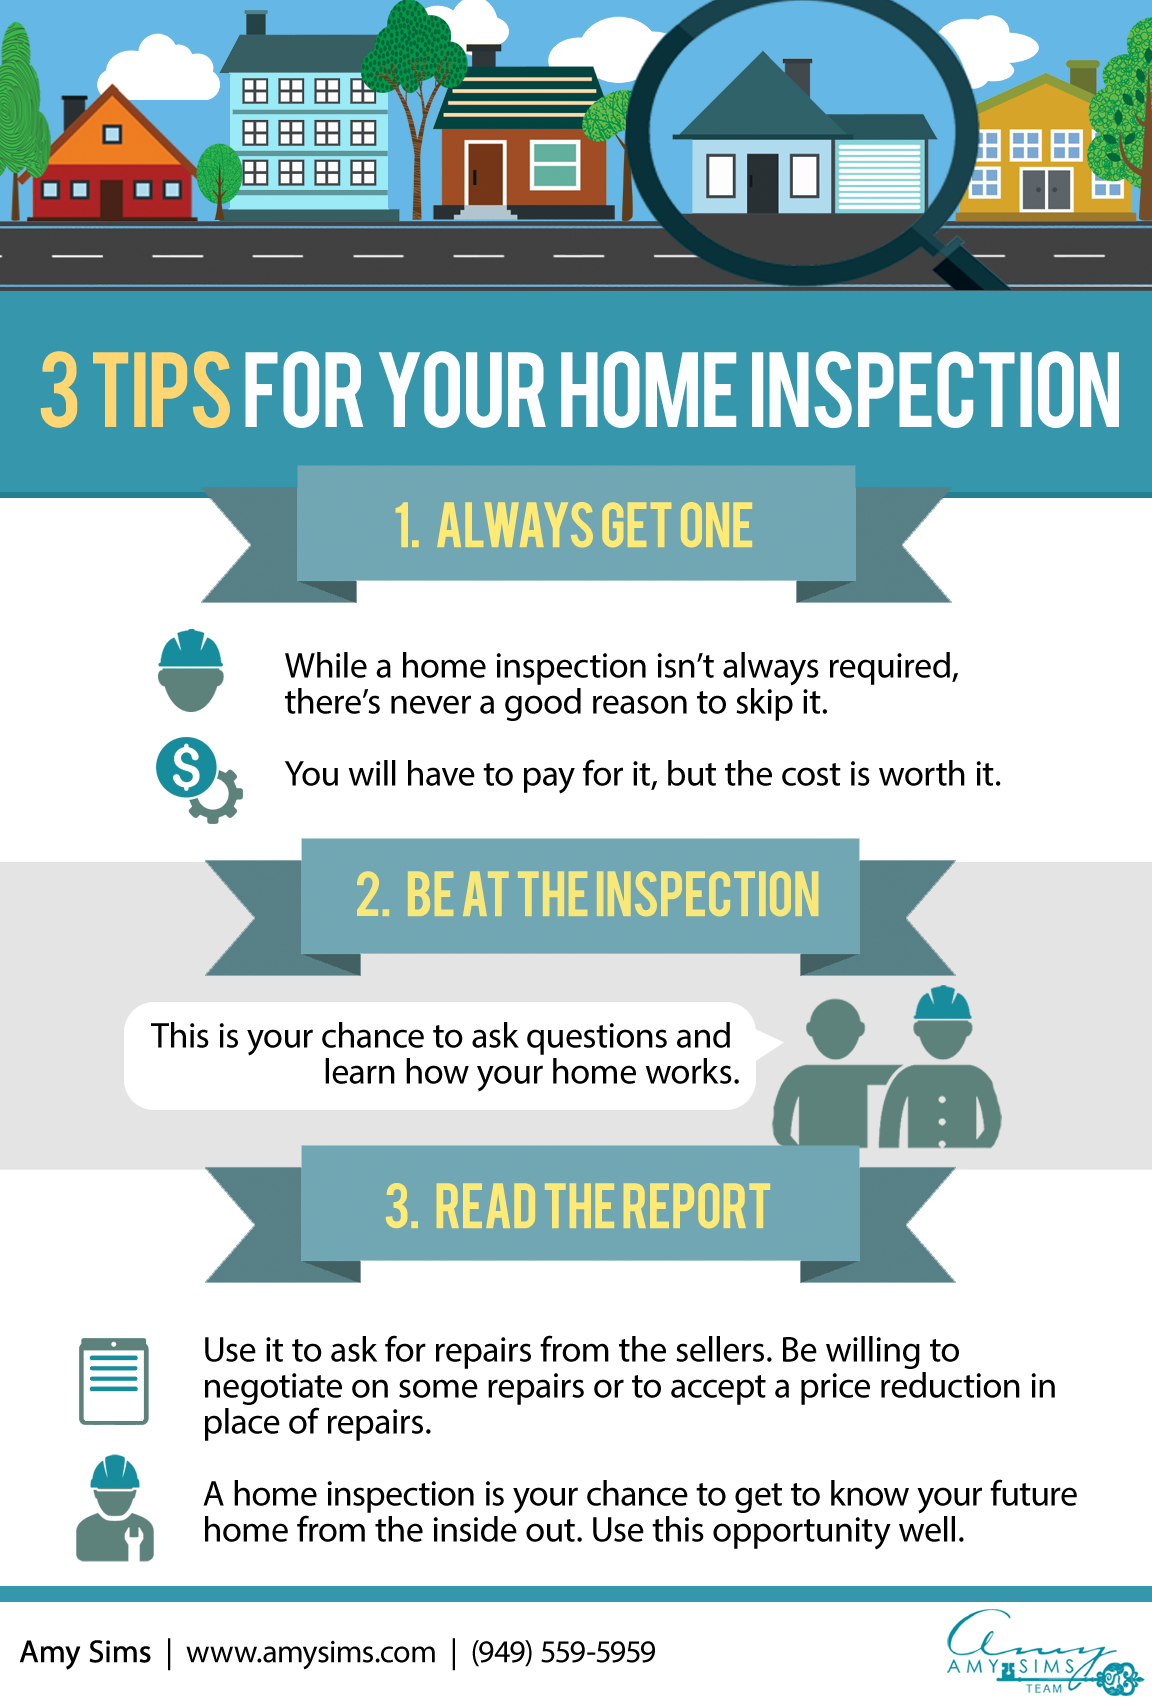 3 Tips for your Home Inspection Image